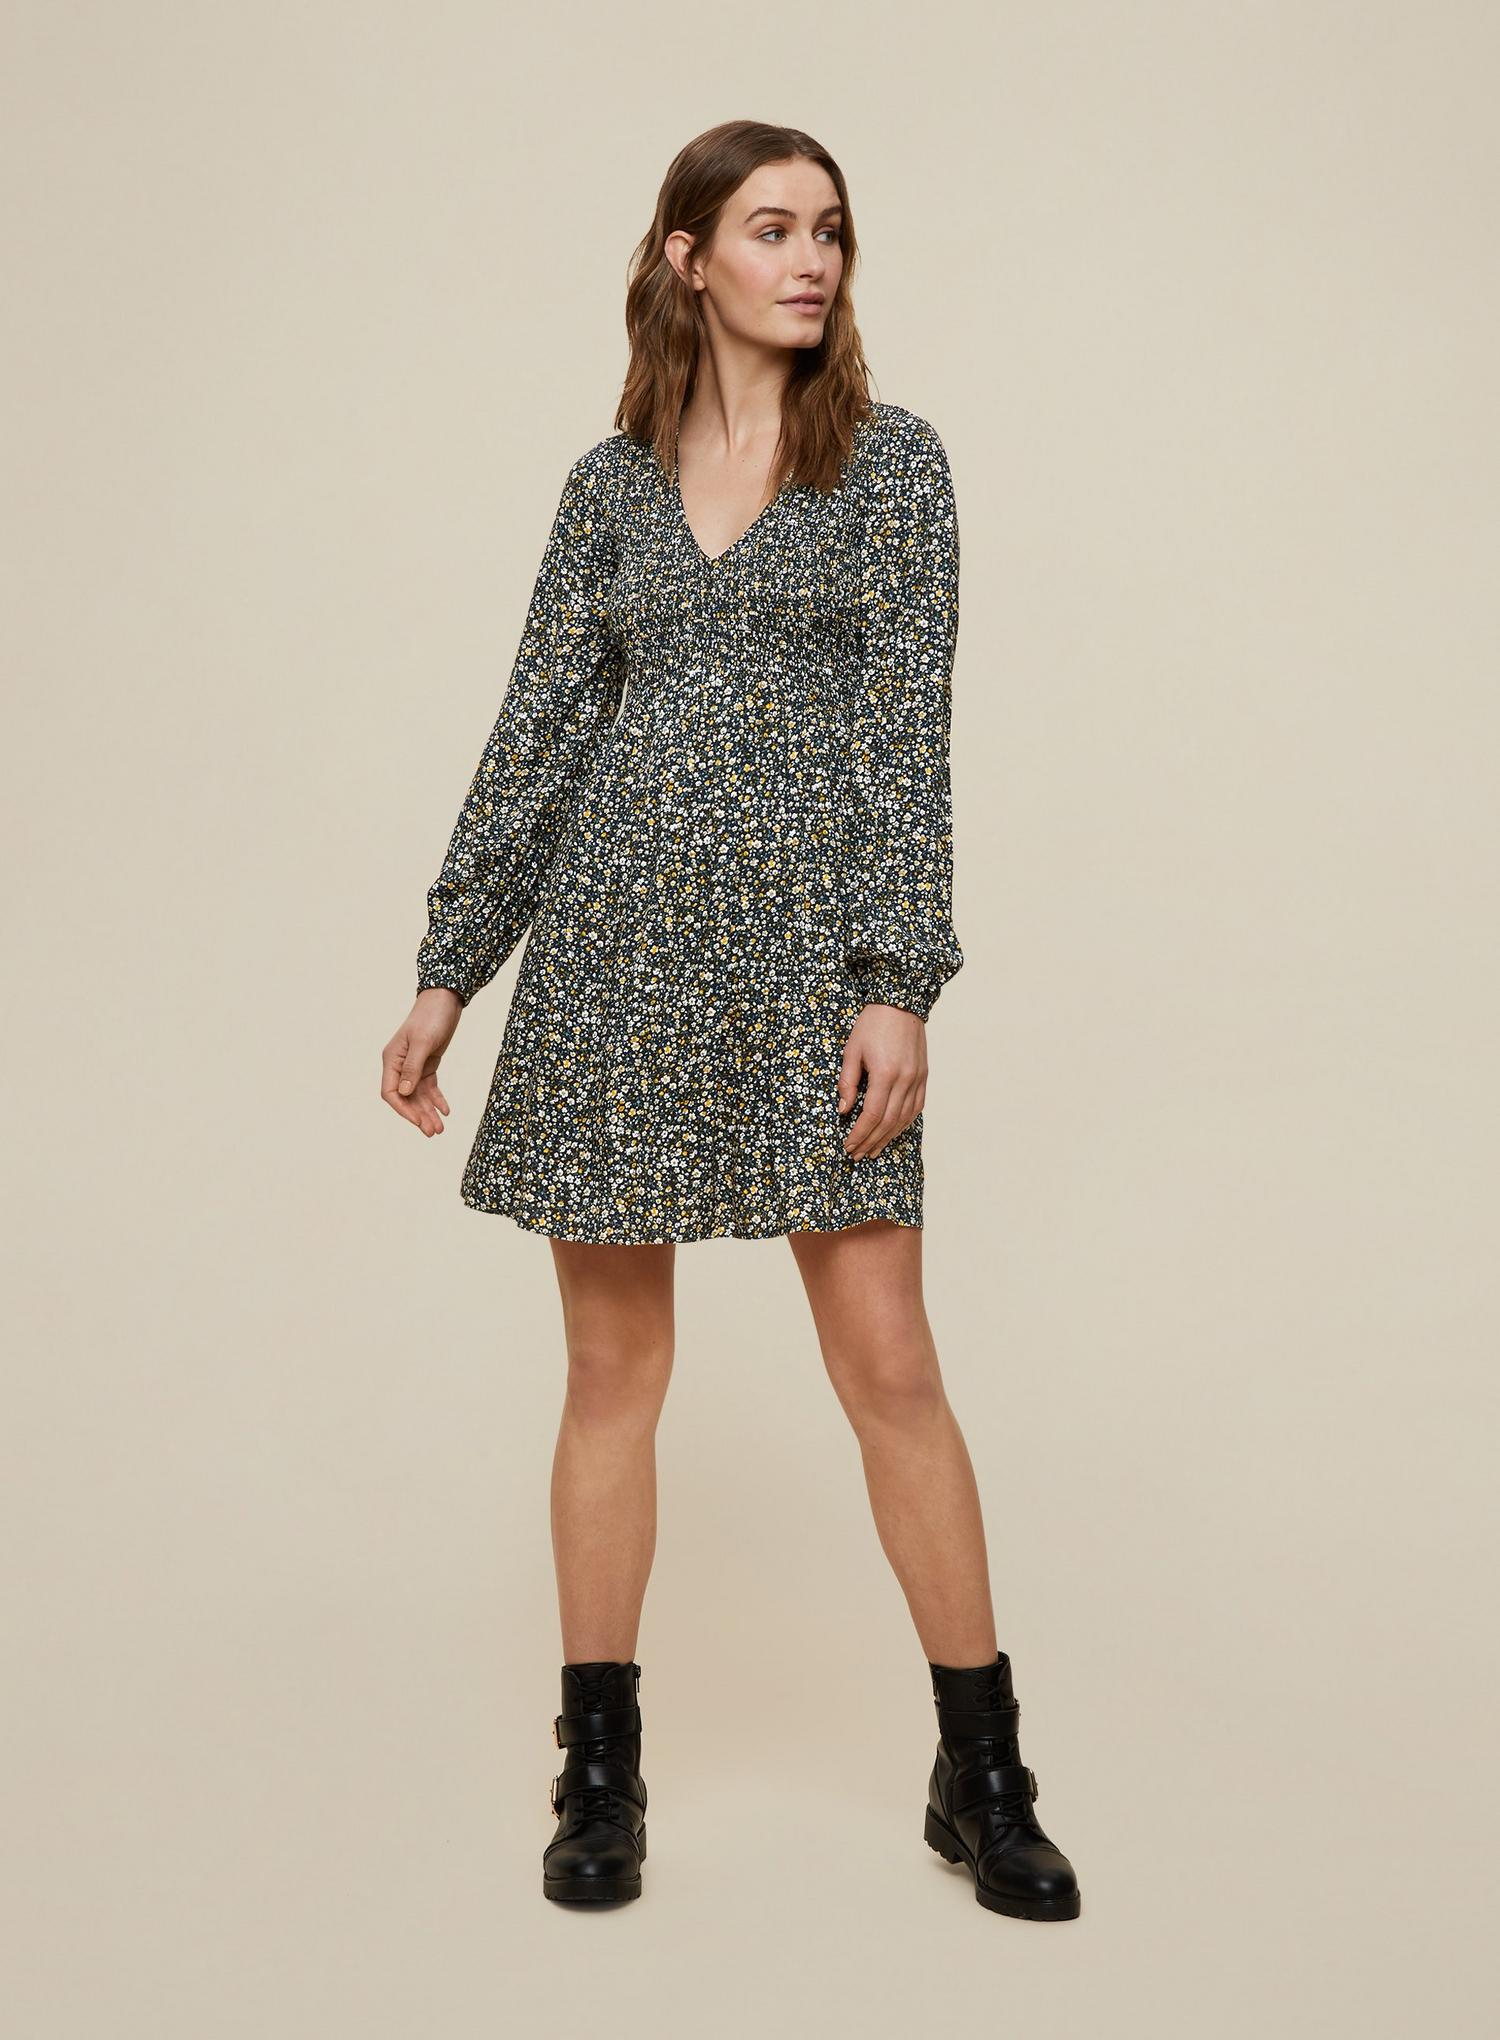 144 Green Ditsy Print Sheered Sleeve Dress image number 1